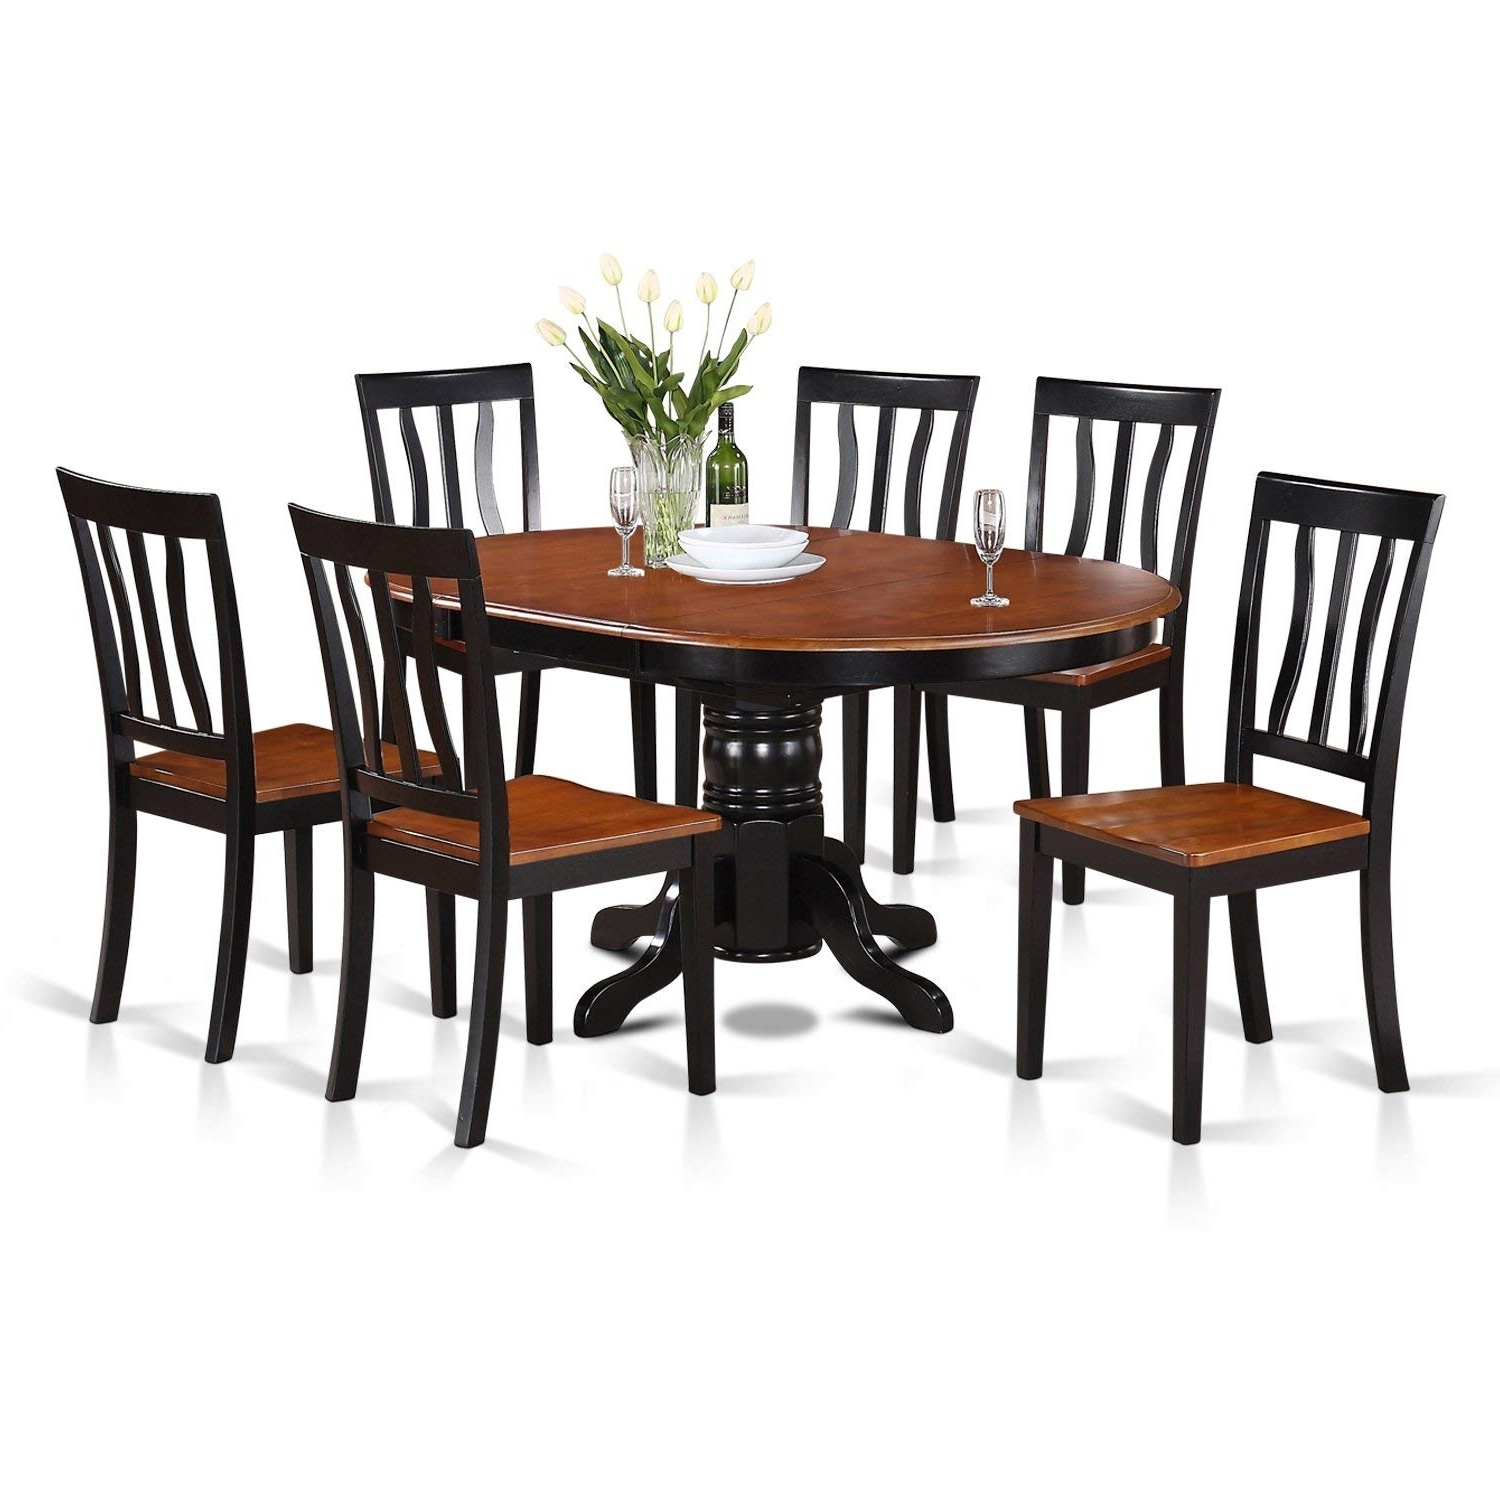 Black Wood Dining Tables Sets Regarding Recent Amazon: East West Furniture Avat7 Blk W 7 Piece Dining Table Set (View 5 of 25)